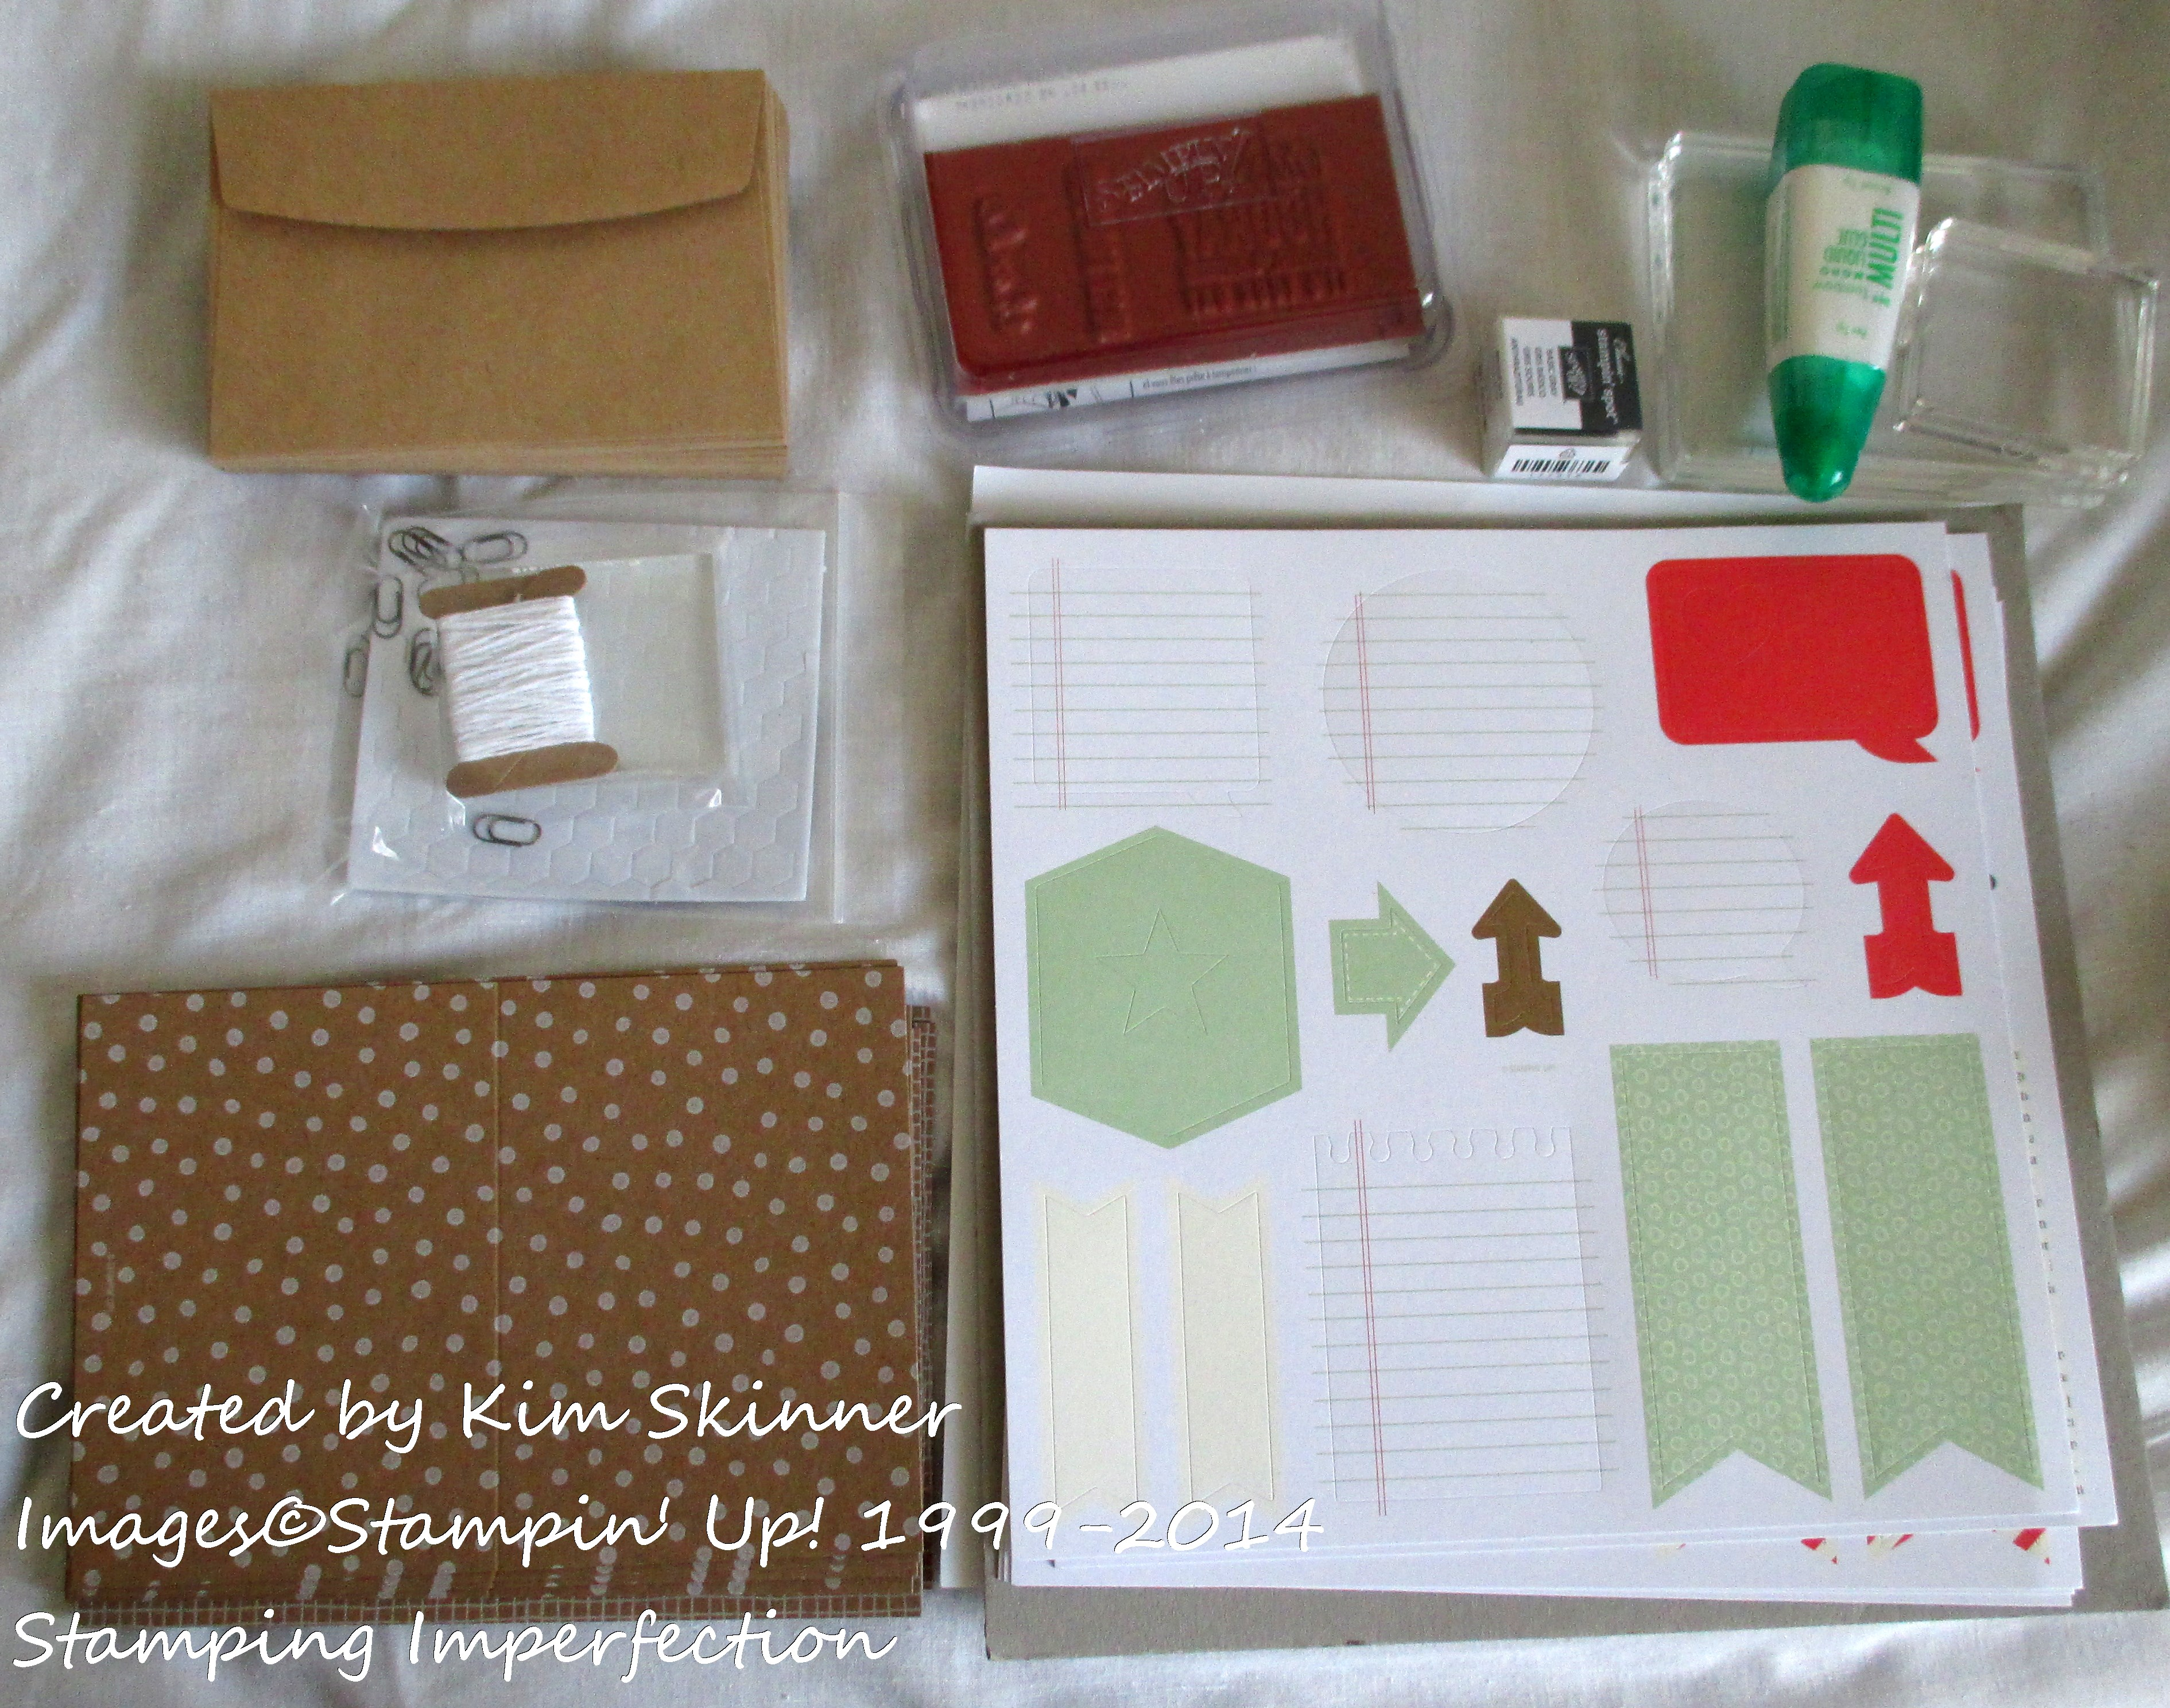 stamping imperfection hip hip hooray card kit + sketch challenge